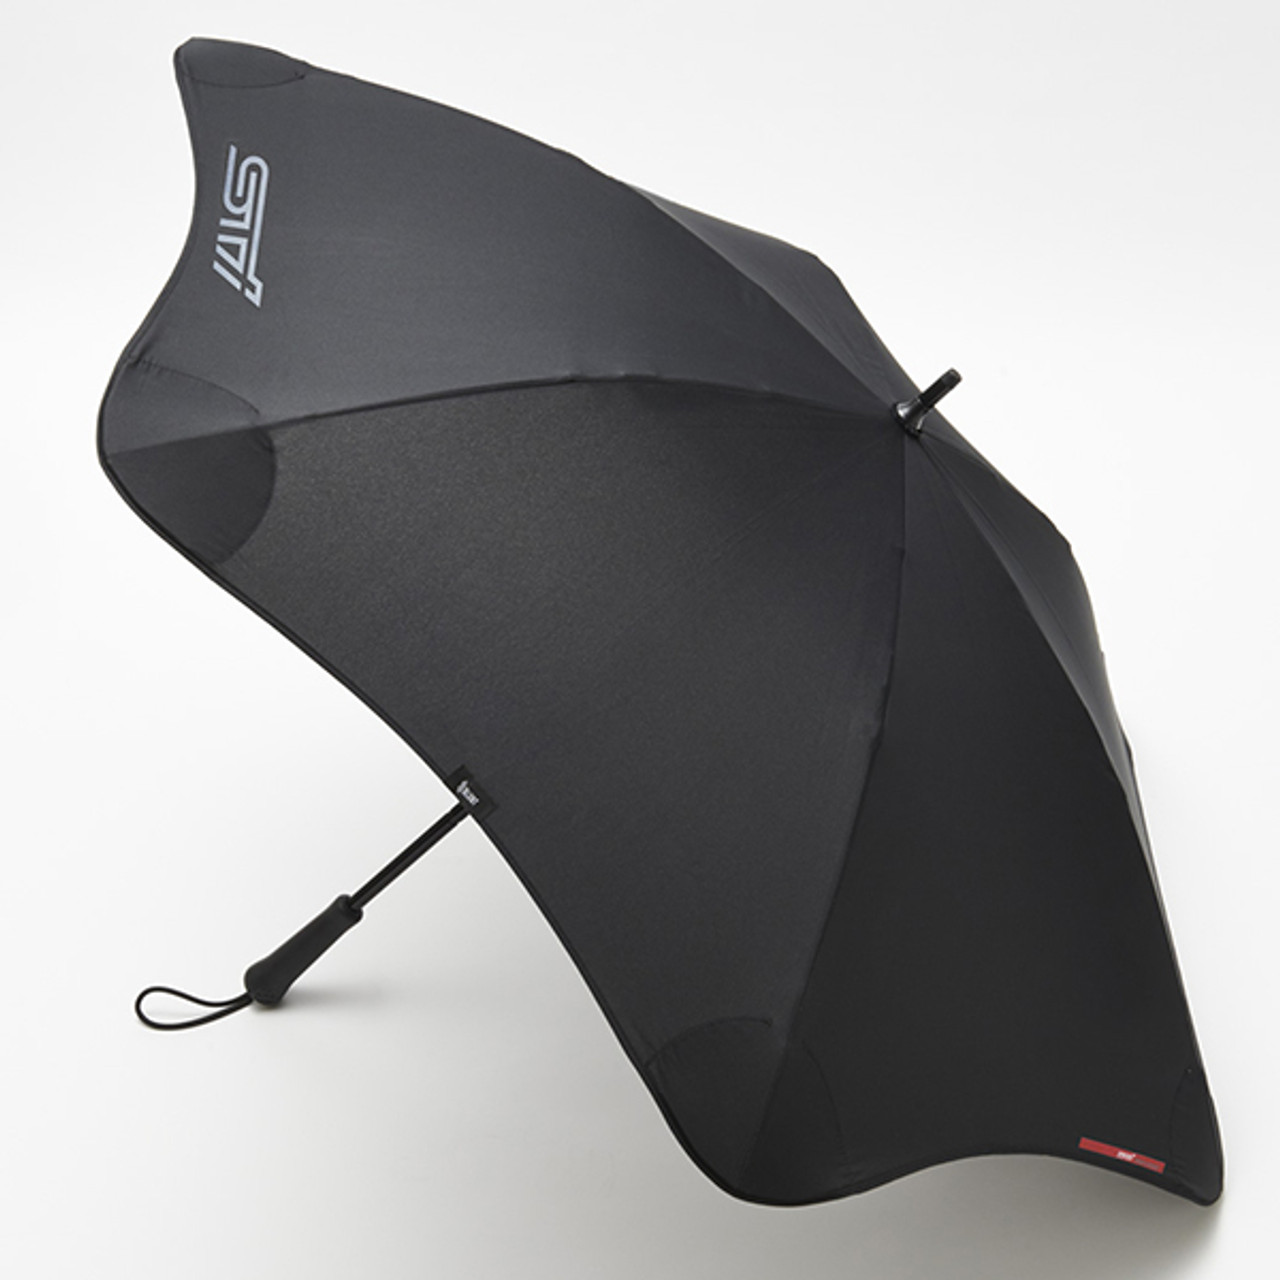 STI Classic Umbrella at AVOJDM.com